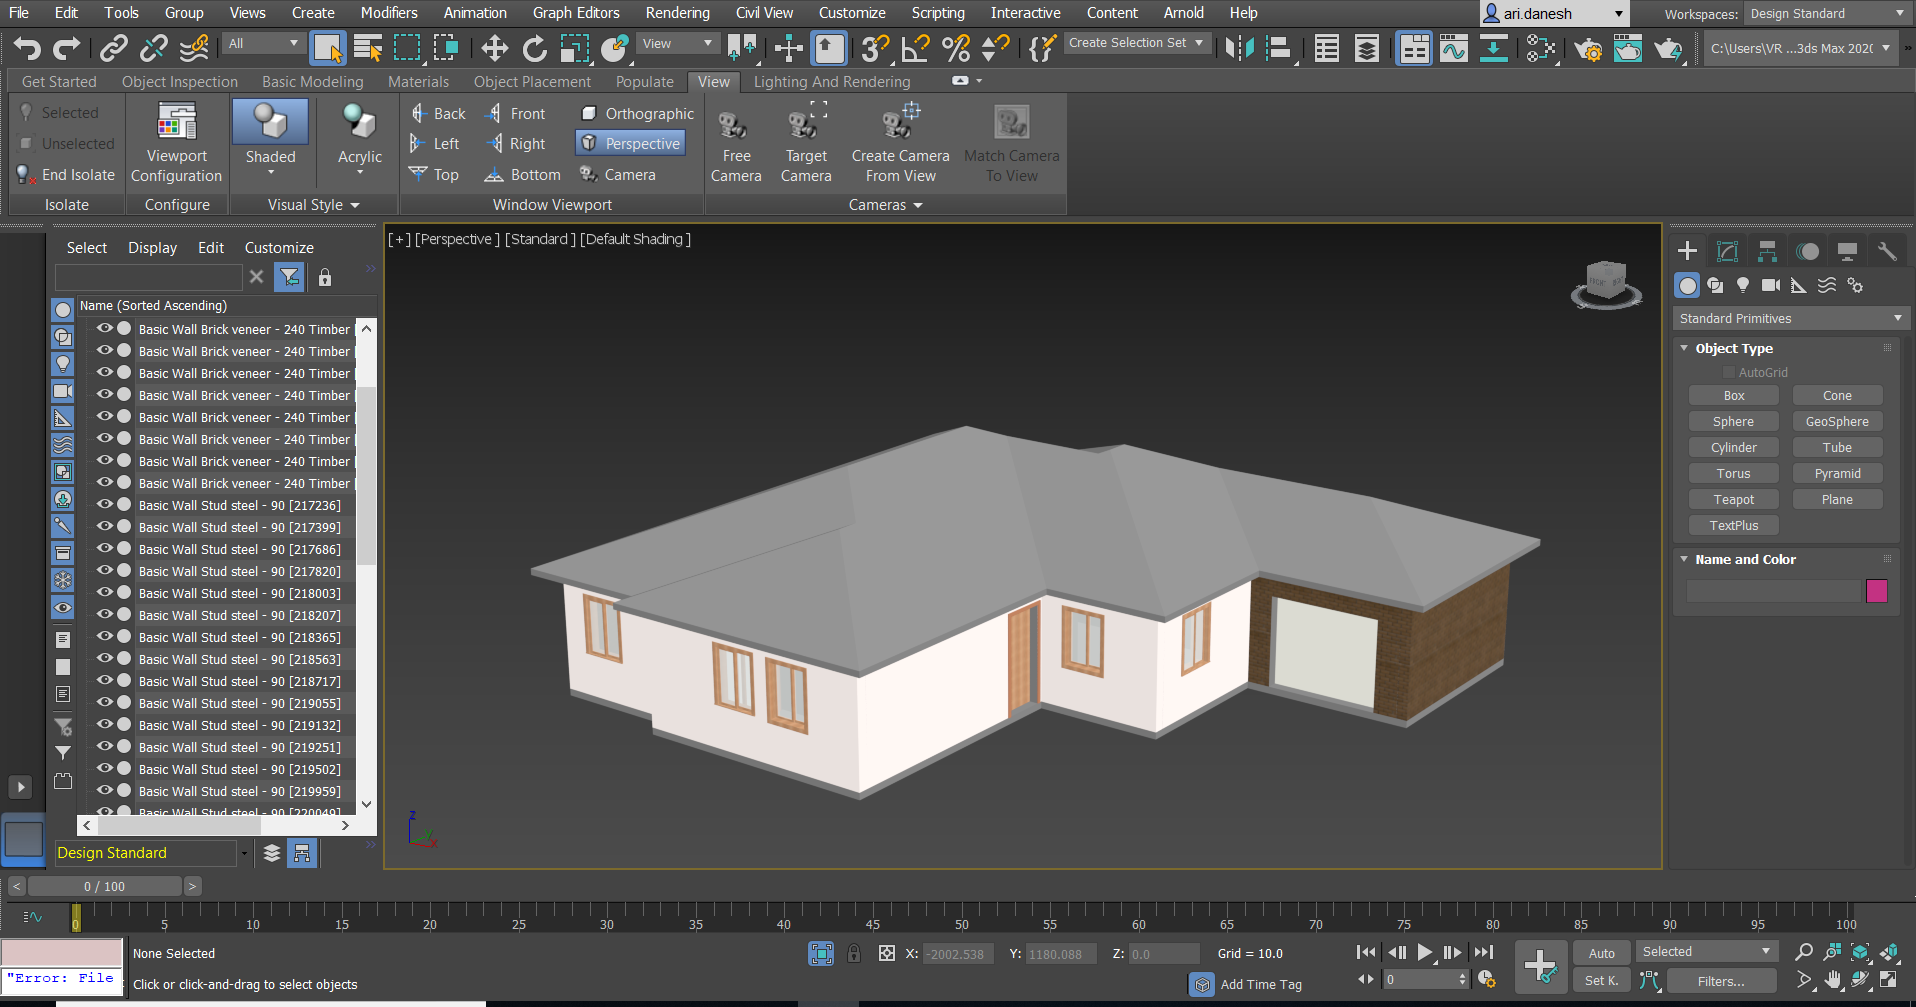 3ds Max import to Interactive doesn't show materials correctly